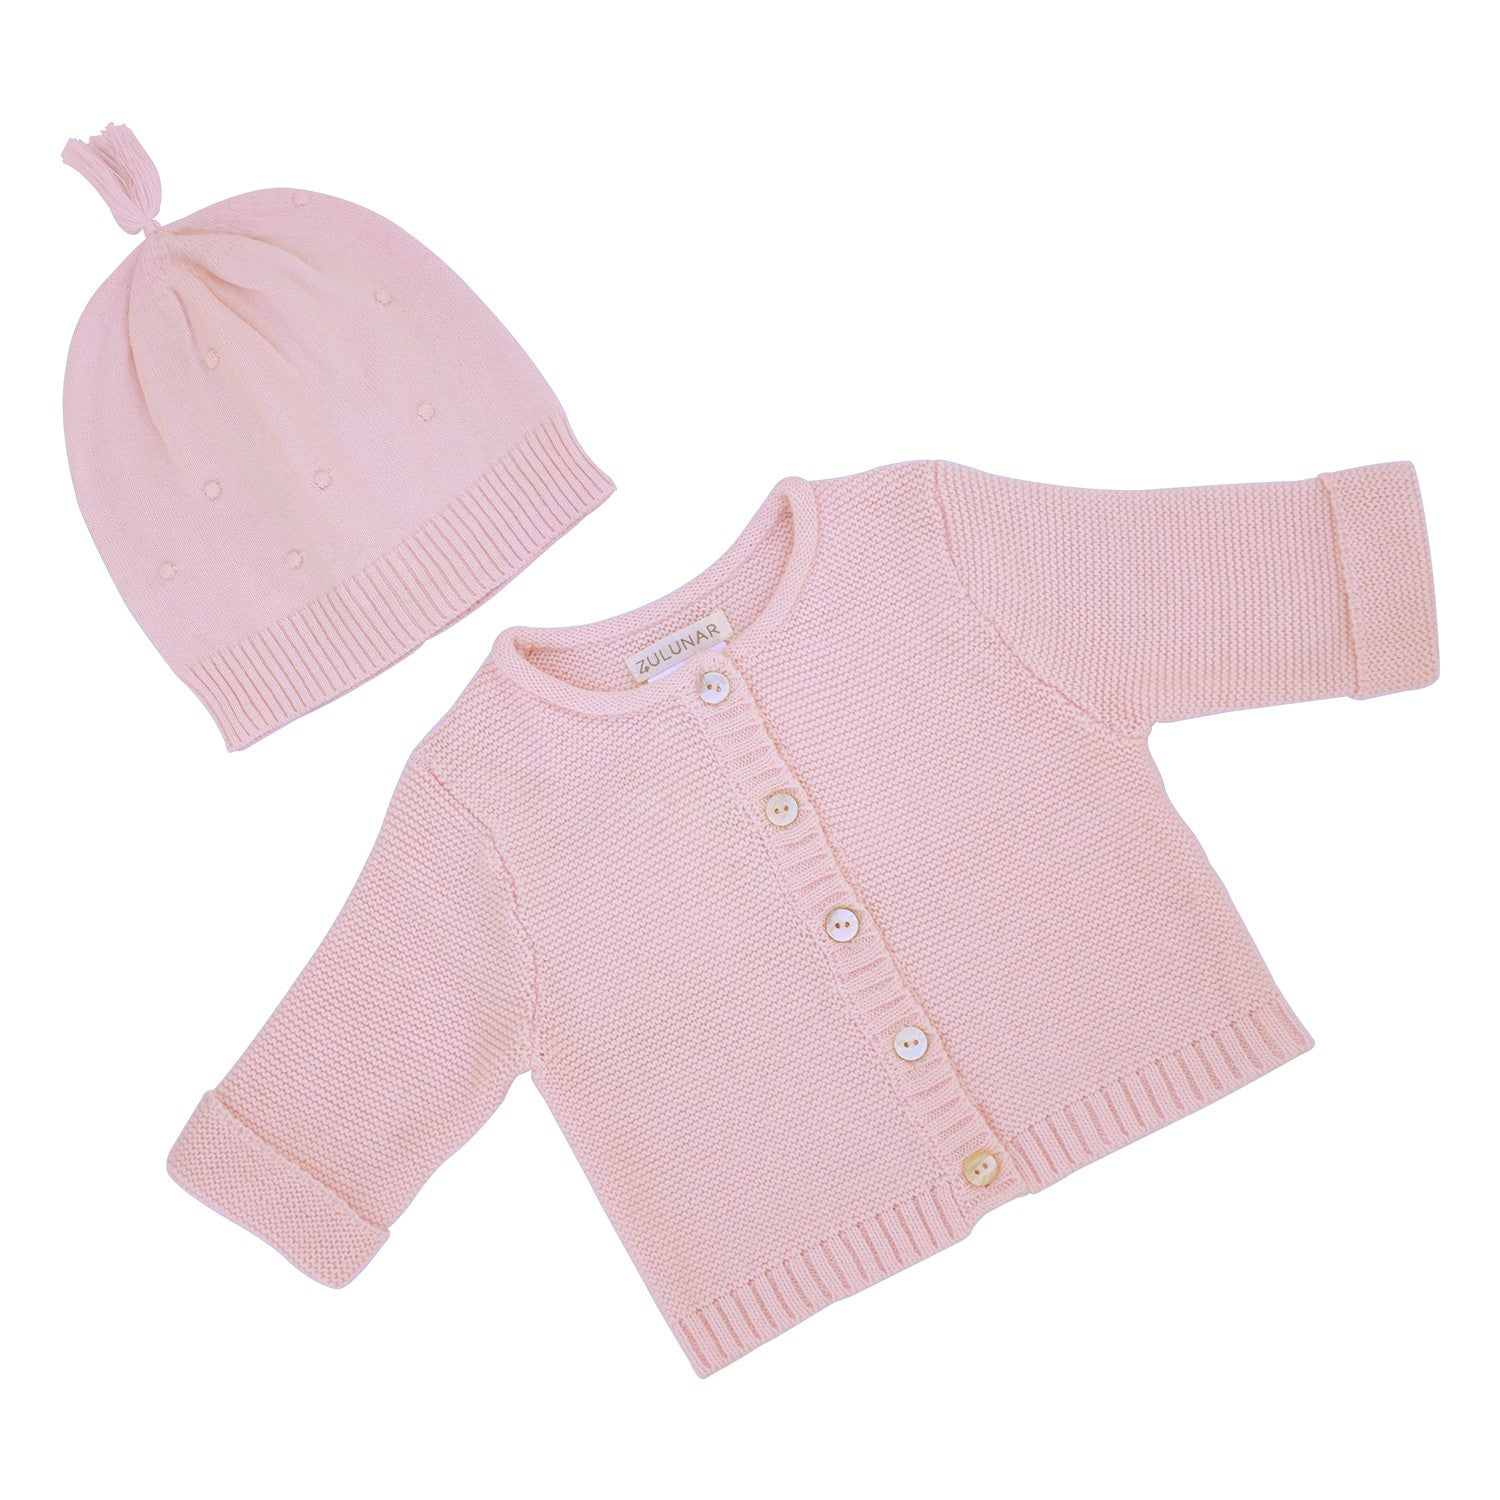 baby set gelato pink girls